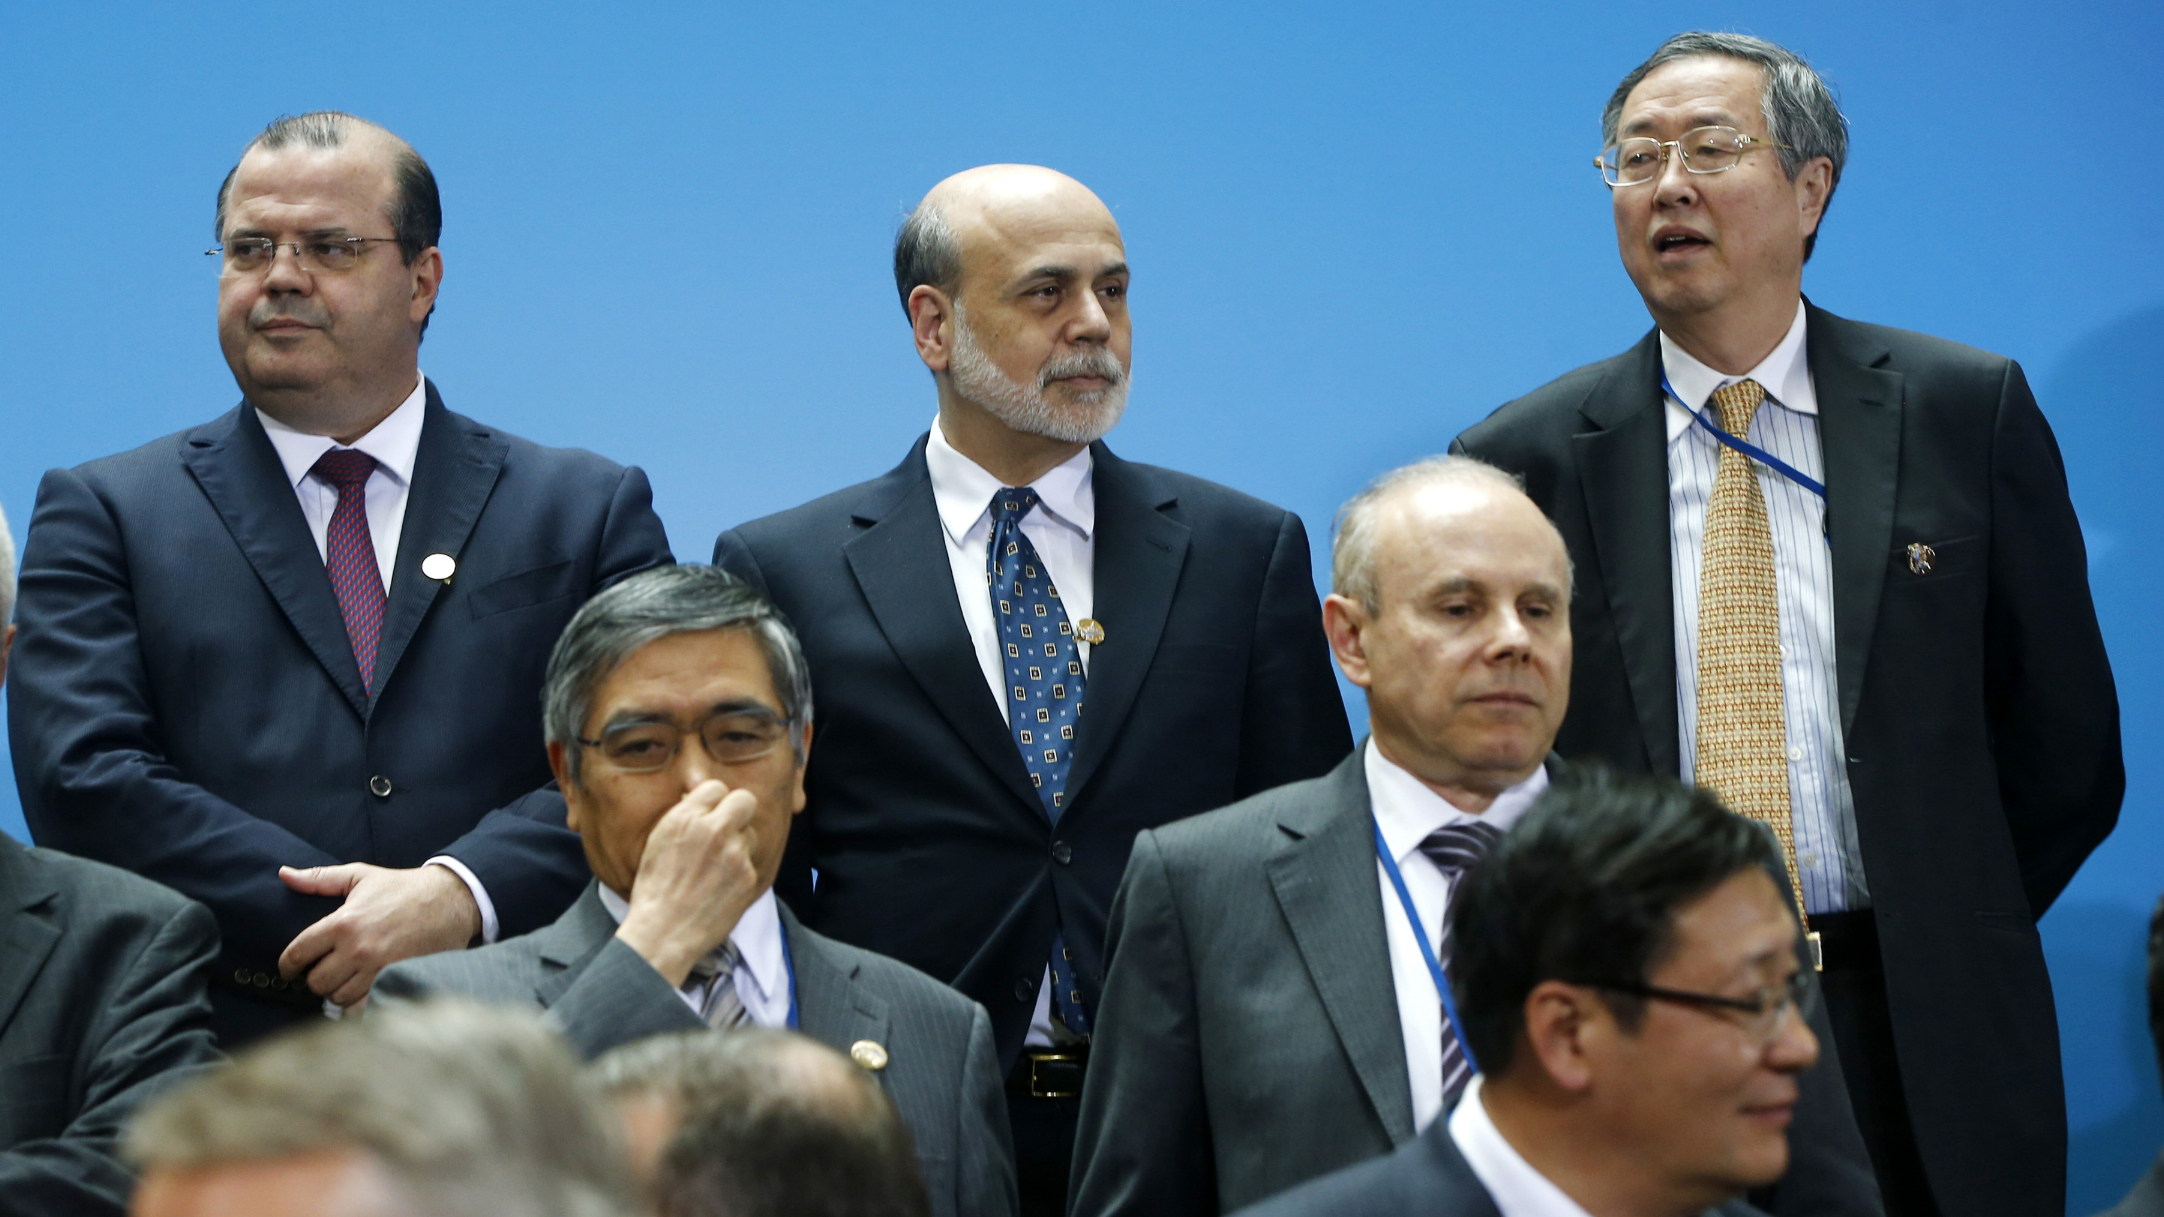 Federal Reserve Chairman Ben Bernanke, center, stands with China Central Bank Gov. Zhou Xiaochuan, right, and Brazil Central Bank Gov. Alexandre Tombini during a group photo of the G20 finance ministers and central bank governors on the sidelines of their meeting at World Bank Group International Monetary Fund Spring Meetings in Washington, Friday, April 19, 2013. (AP Photo/Charles Dharapak